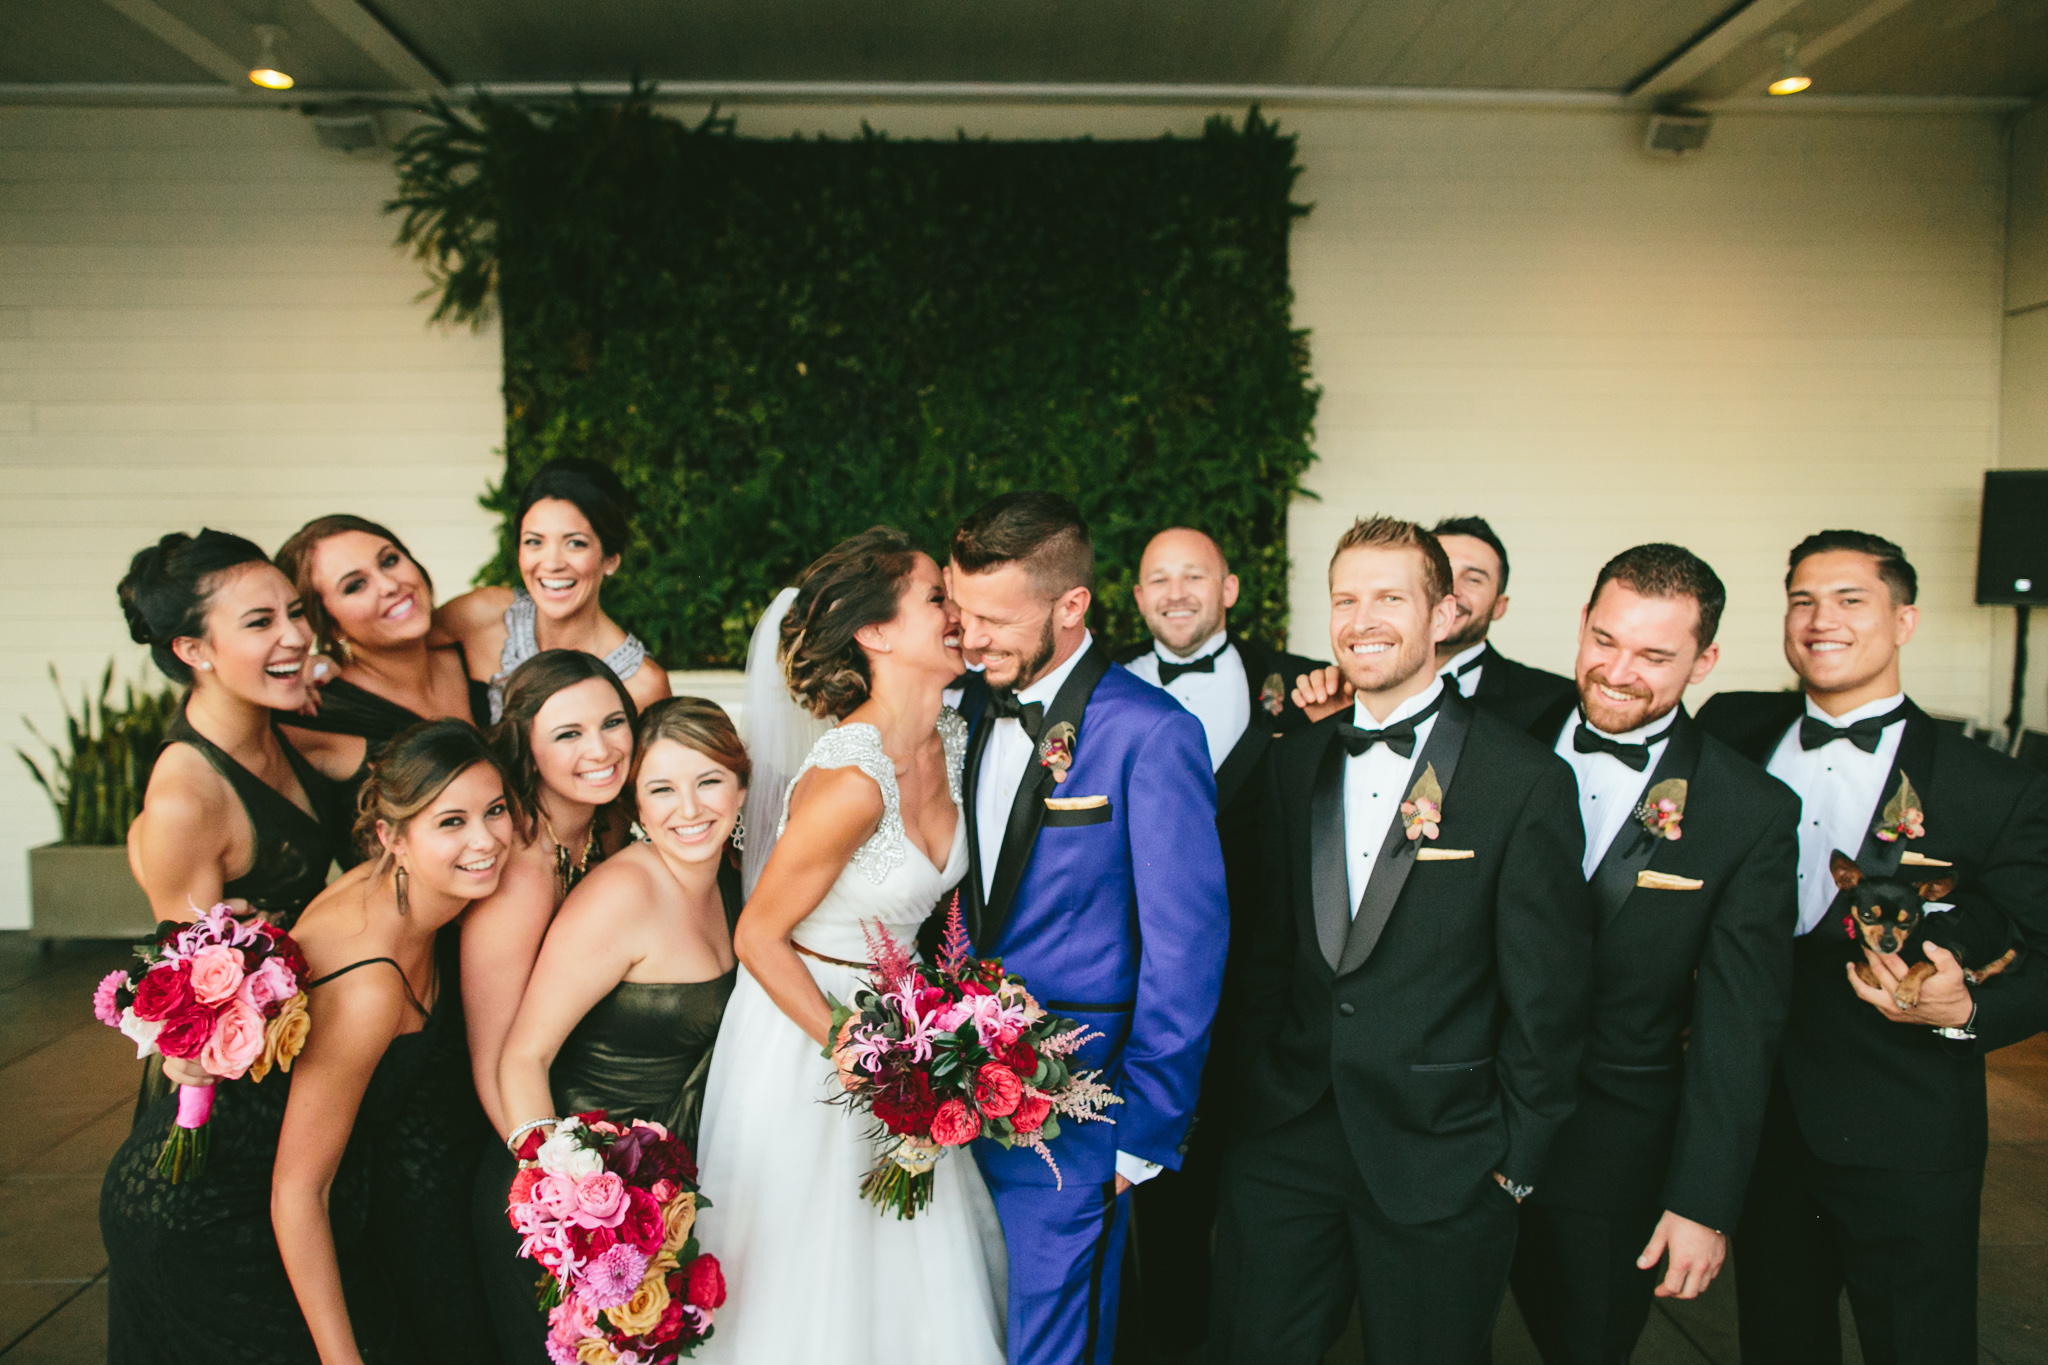 Brianna+Jeff-WEDDING_KellyBoitanoPhotography20151219_0134